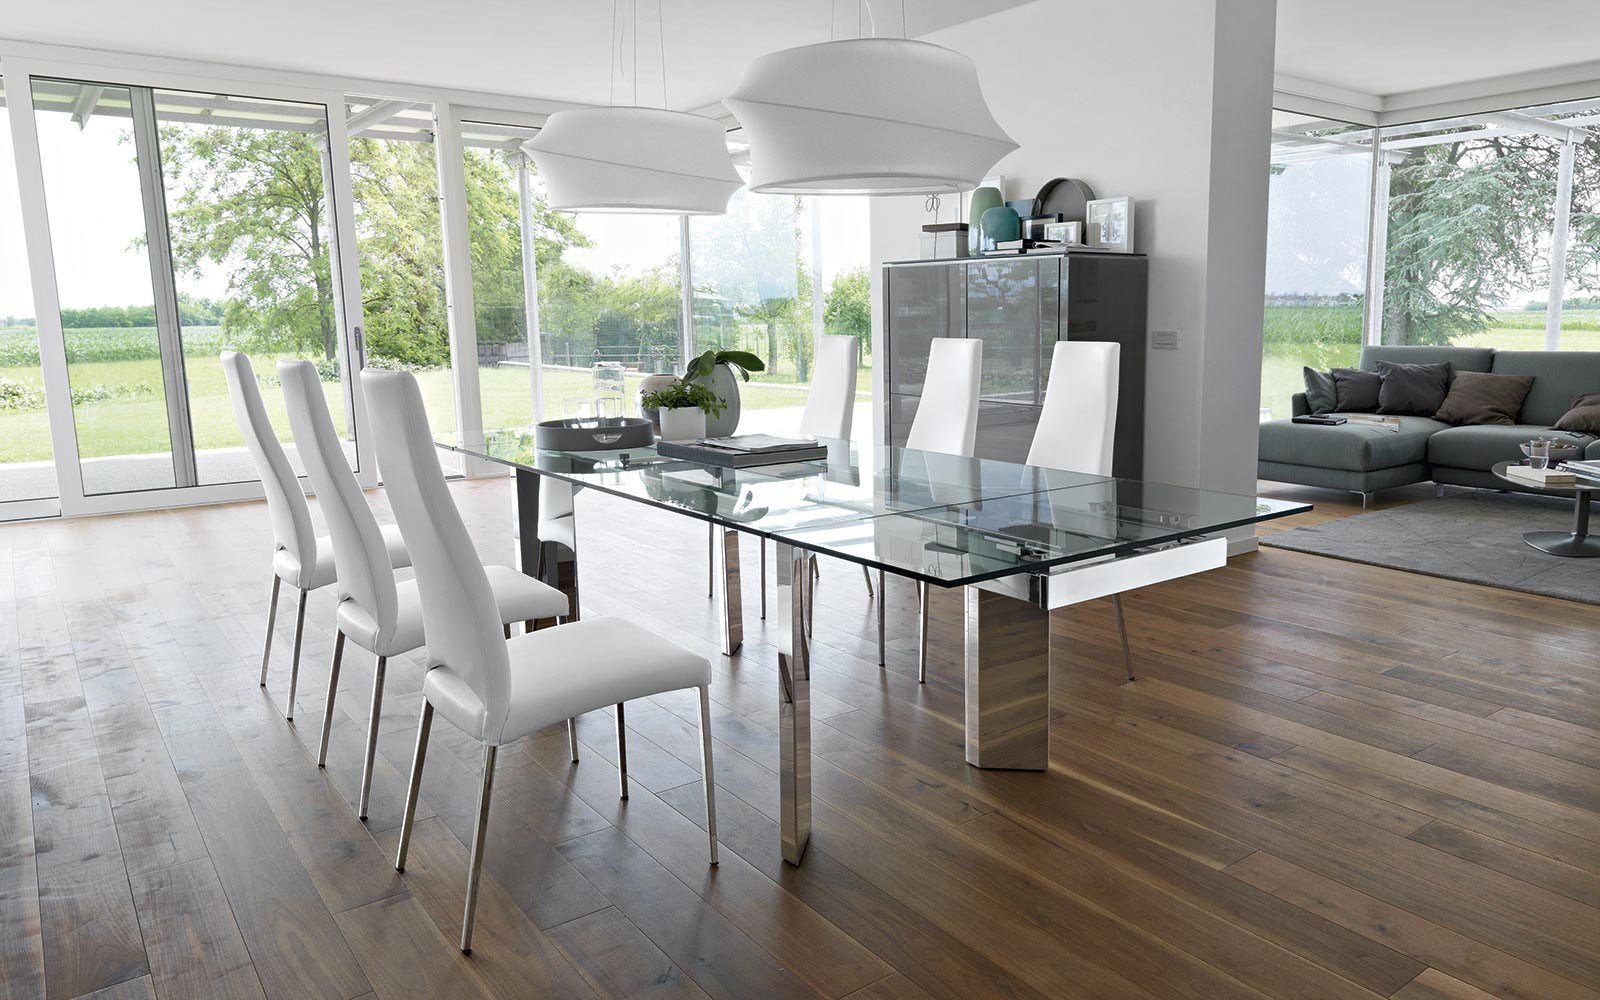 Tower tavolo in vetro by calligaris for Calligaris tavolo vetro